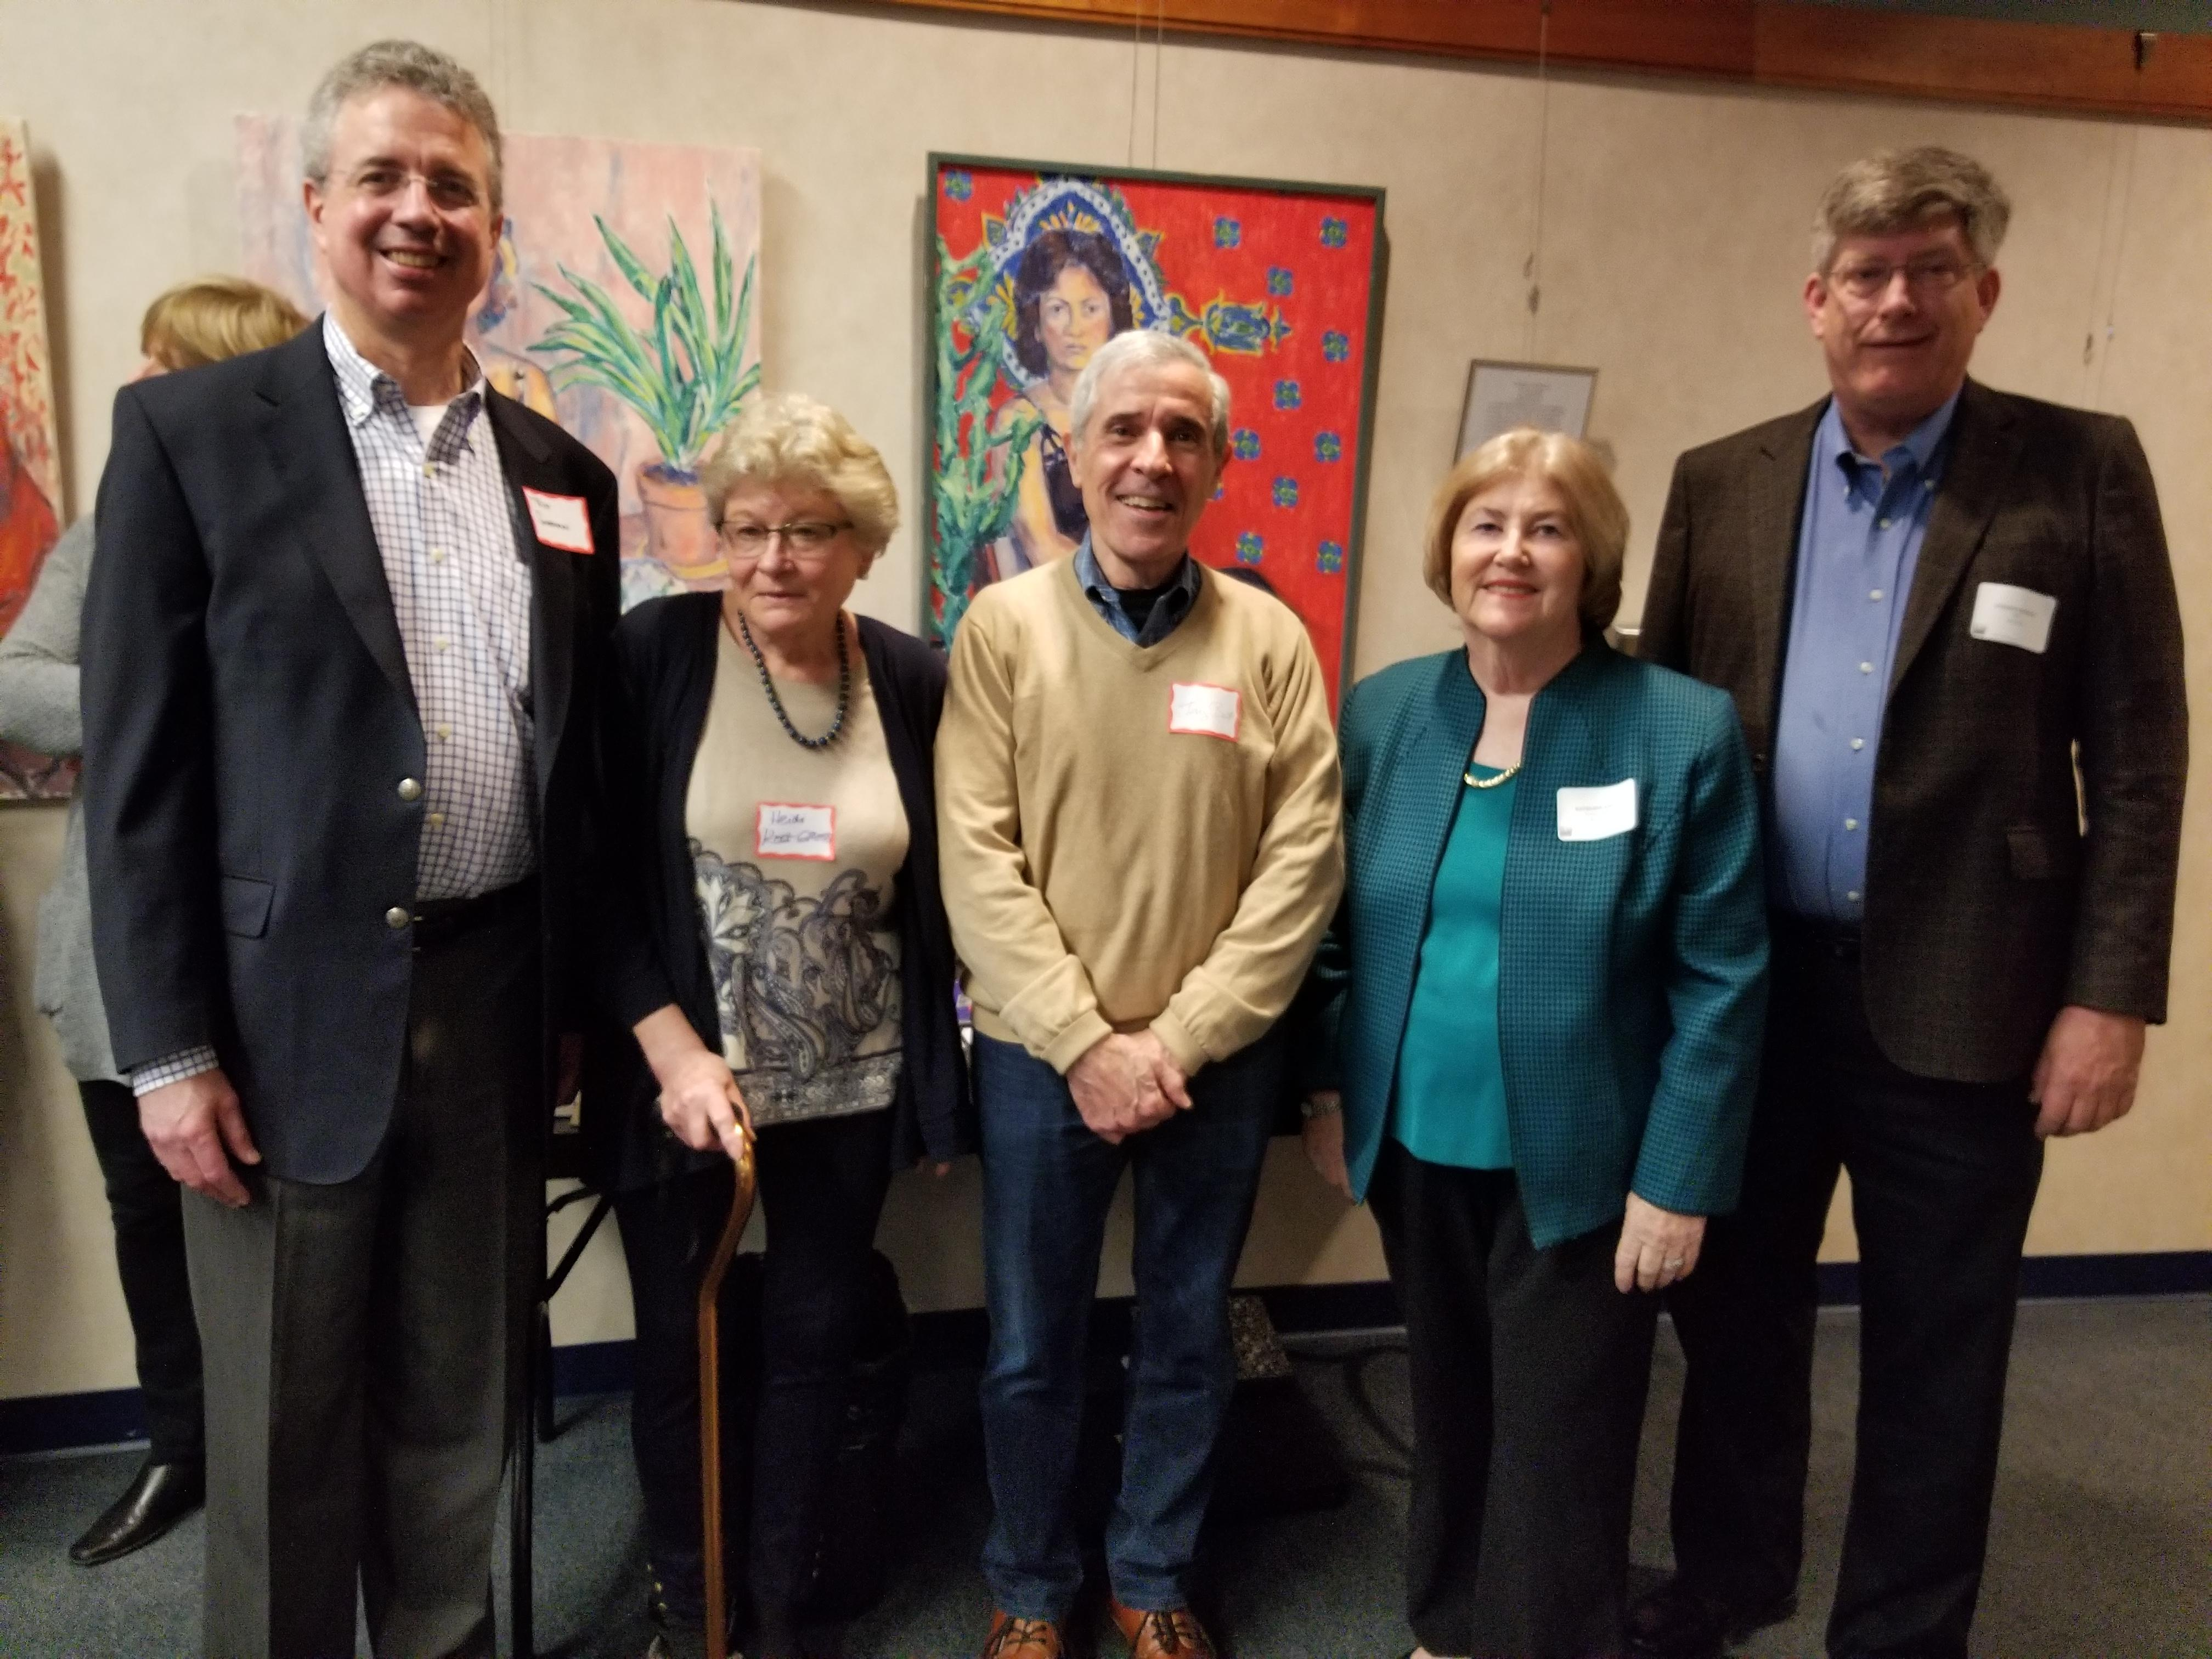 2018 Retirees from Wellesley Boards